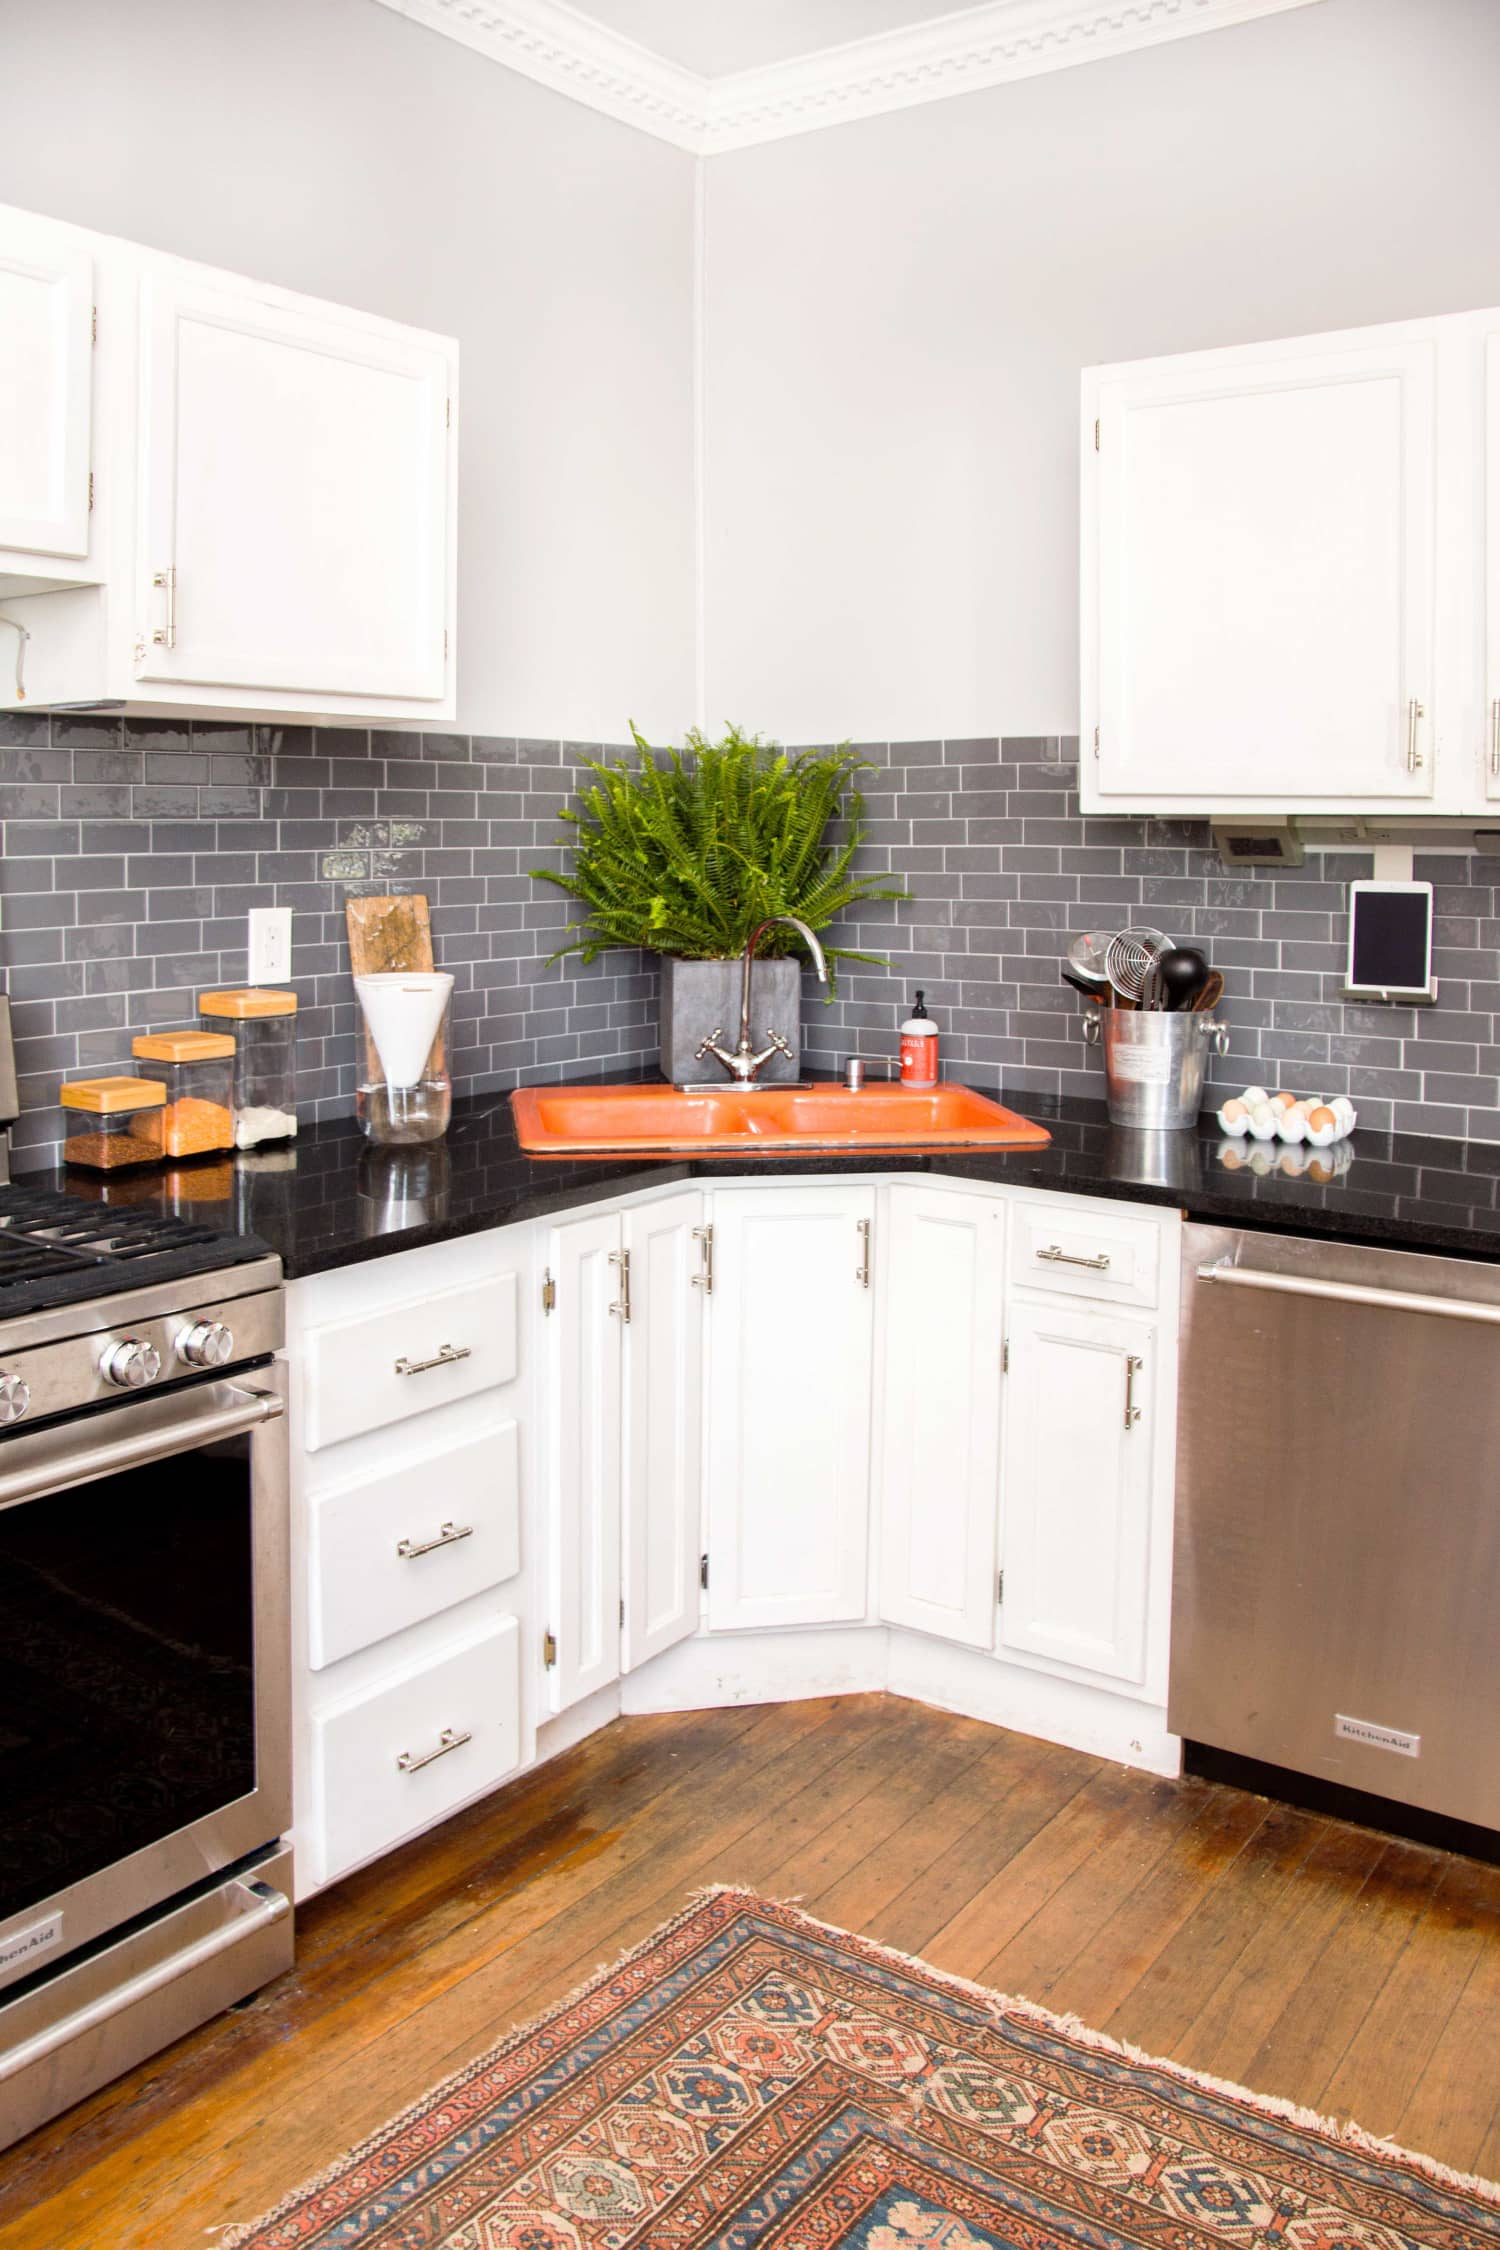 Colorful Kitchen Sink Trend - Kitchen Design Trends | Apartment Therapy